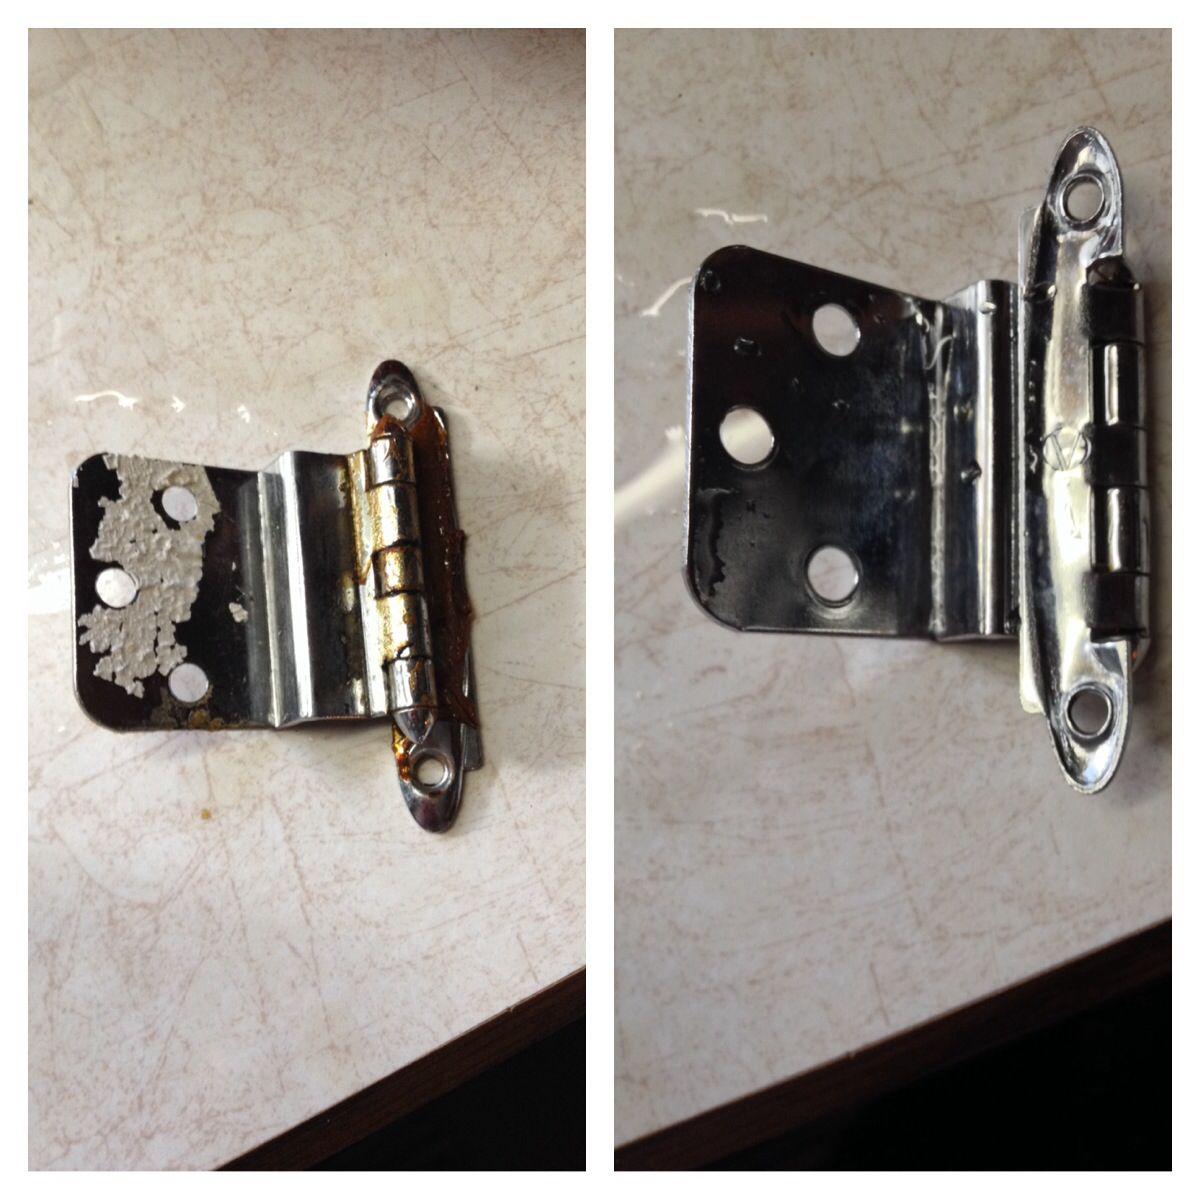 Old kitchen cabinet hinges - Cleaning Old Cabinet Hardware The Easy Way Place Hinges Hardware Etc In